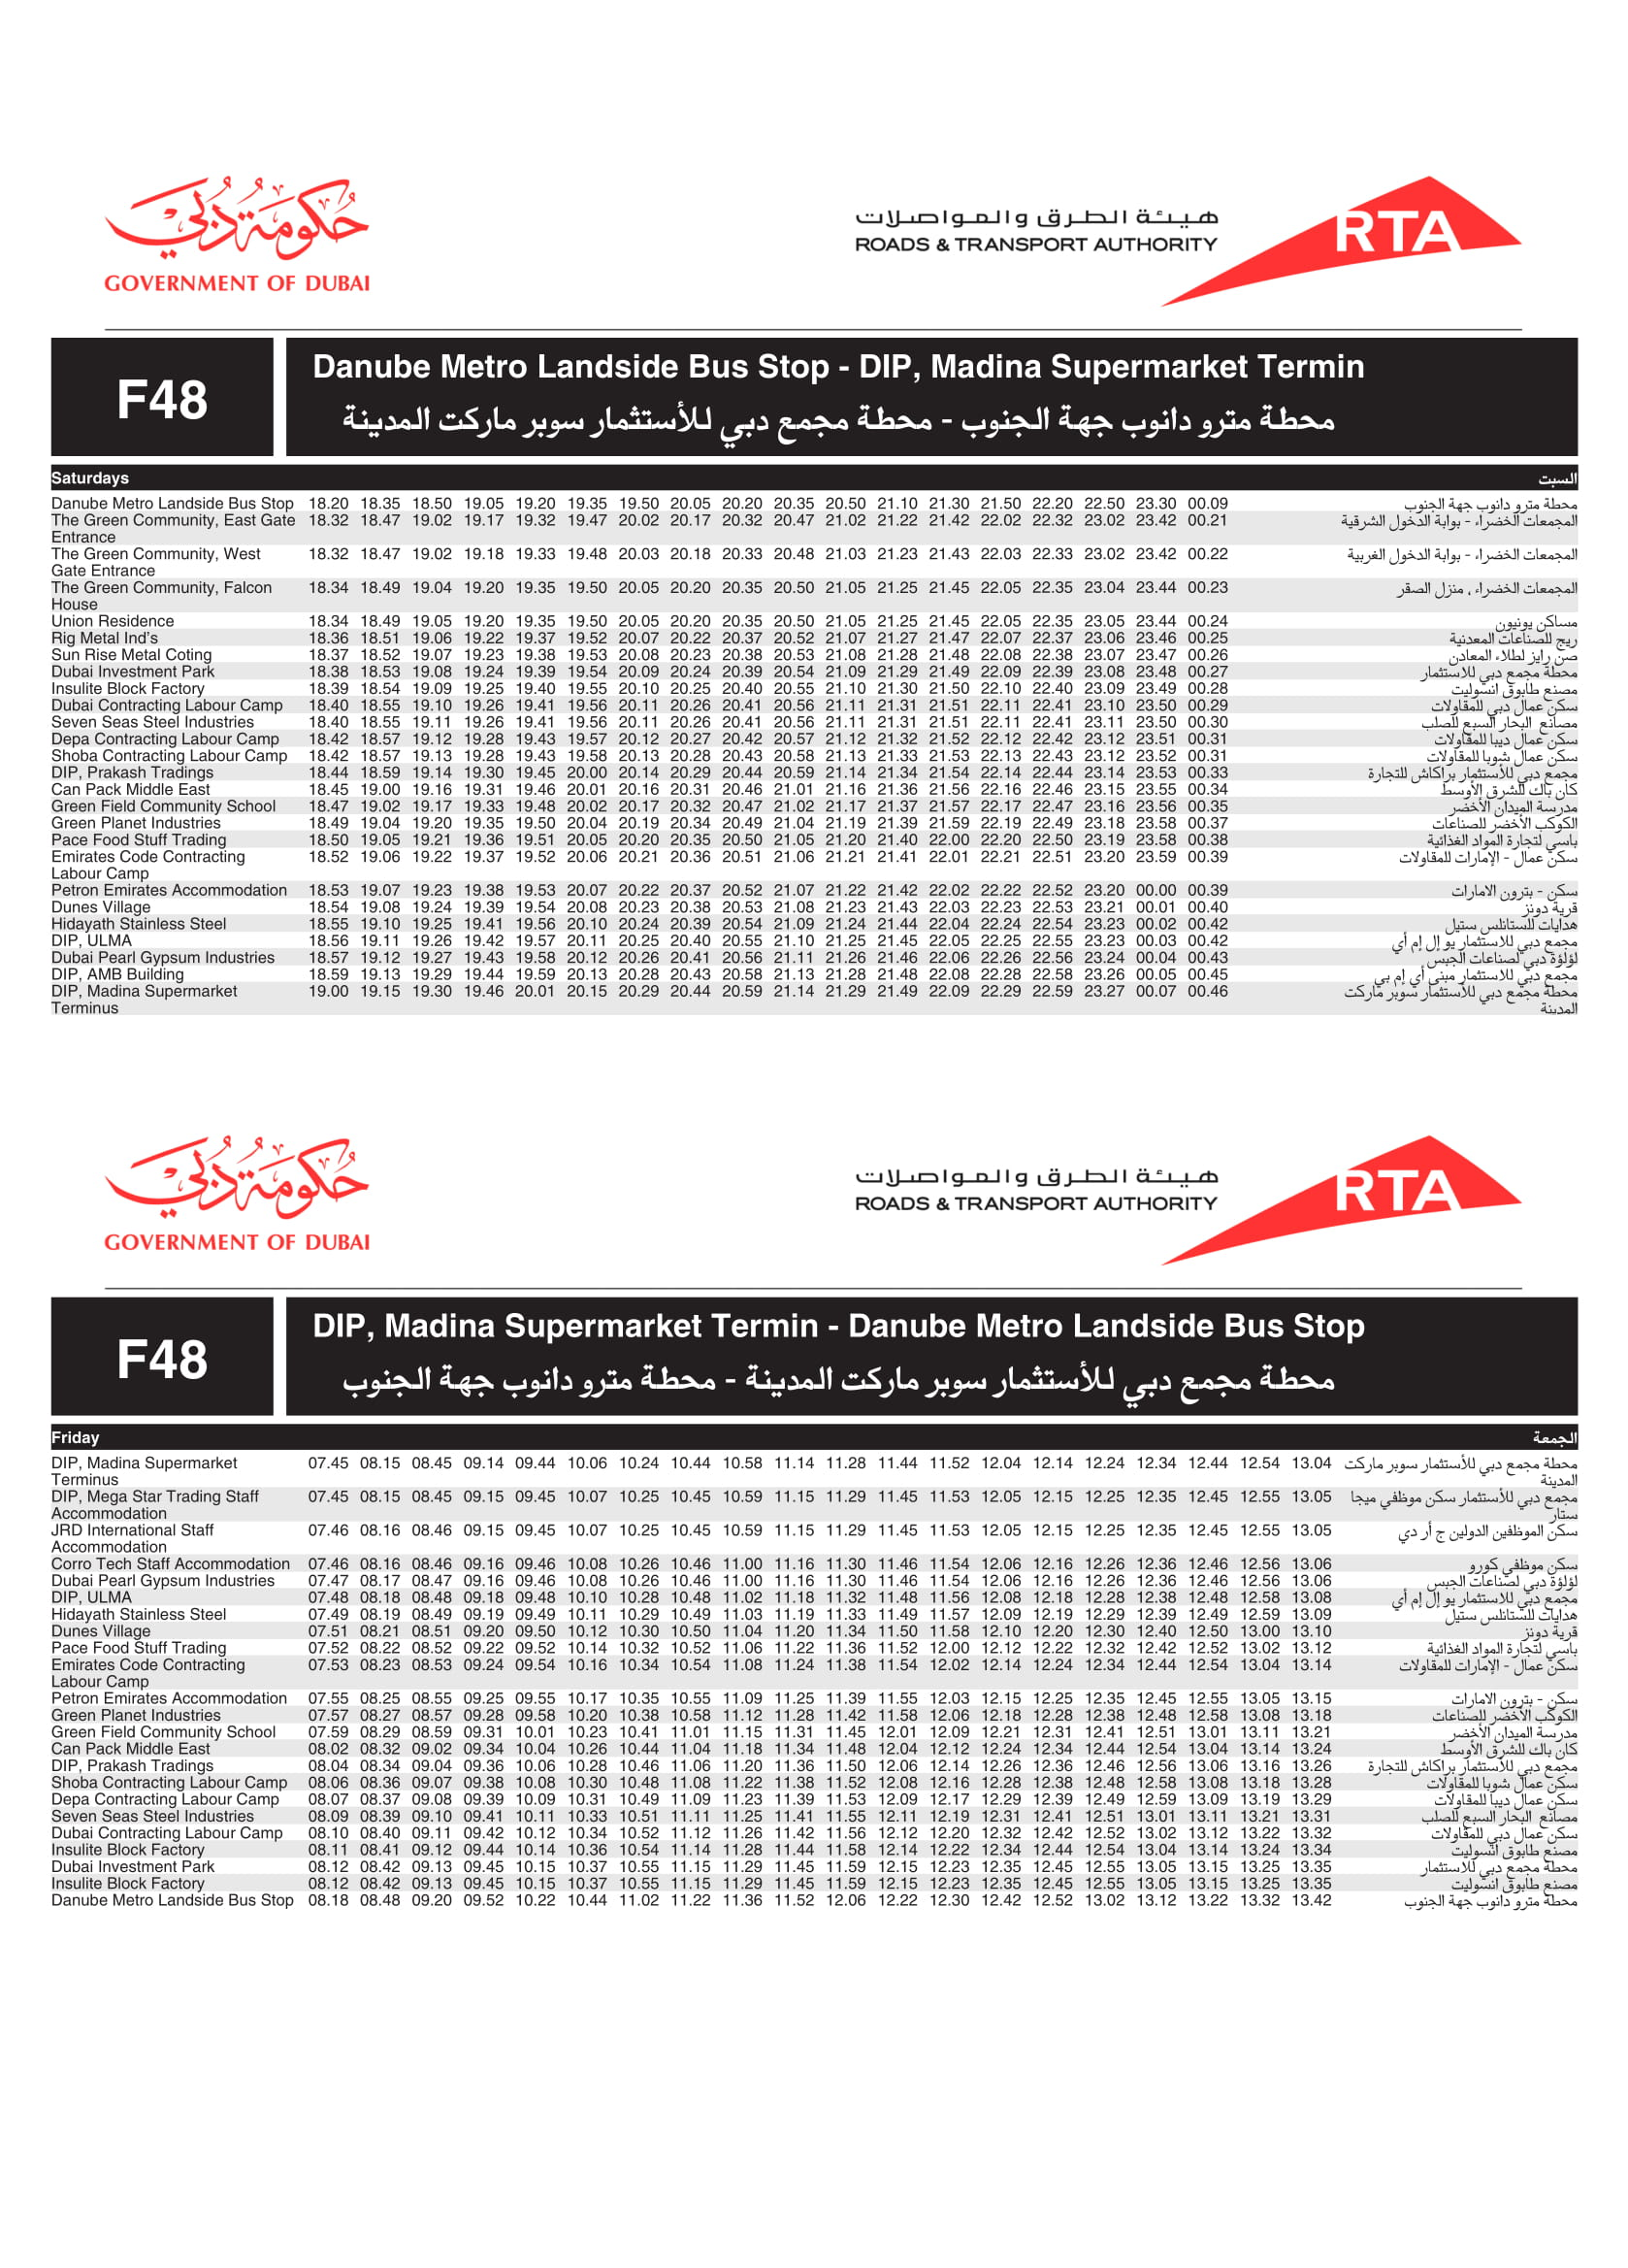 F48 Bus Route In Dubai Time Schedule Stops And Maps